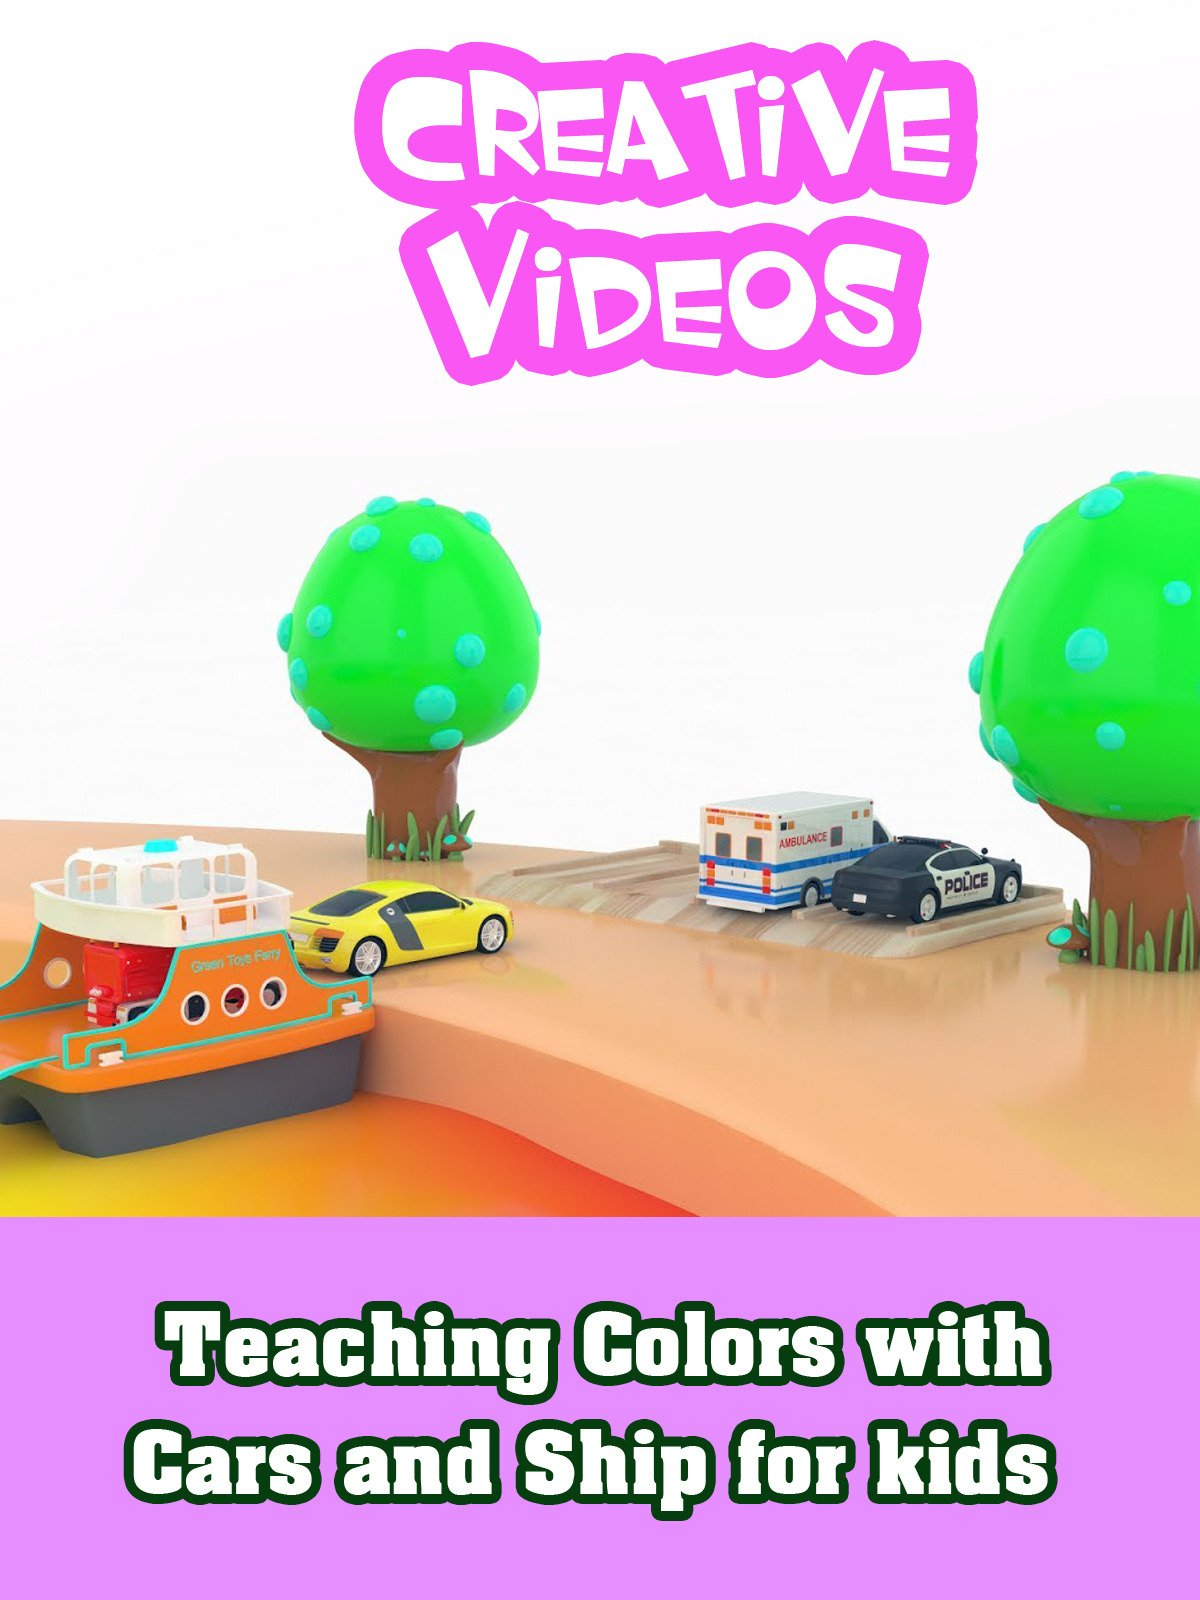 Teaching Colors with Cars and Ship for kids